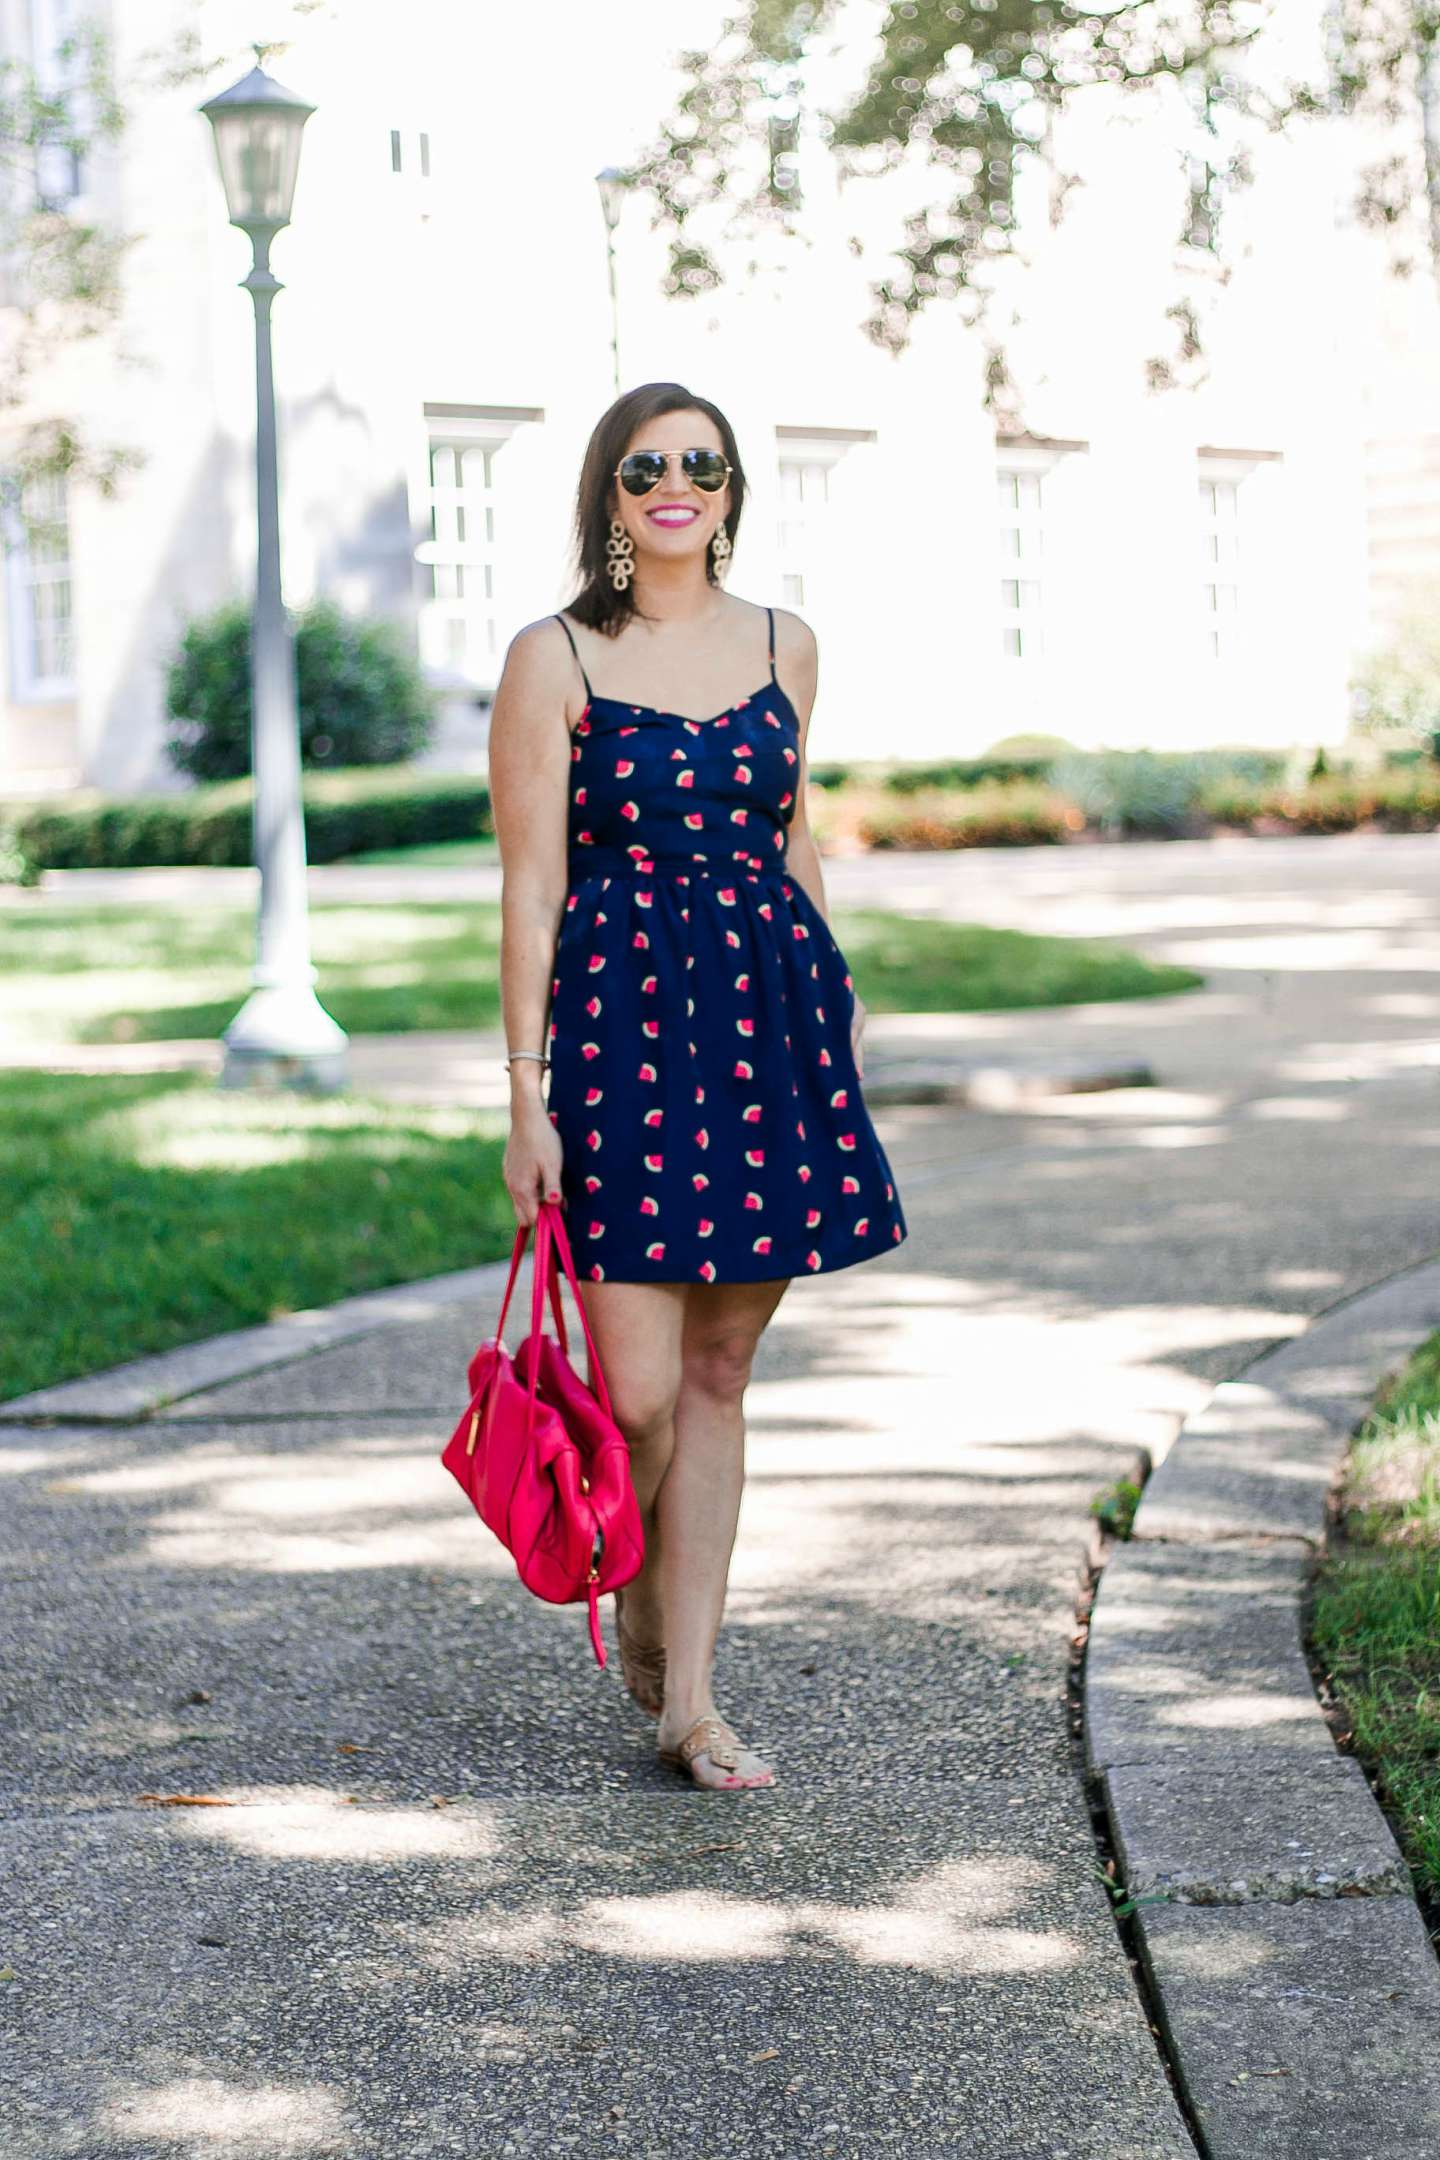 The Best Watermelon Dress for National Watermelon Day by NC fashion blogger I'm Fixin' To